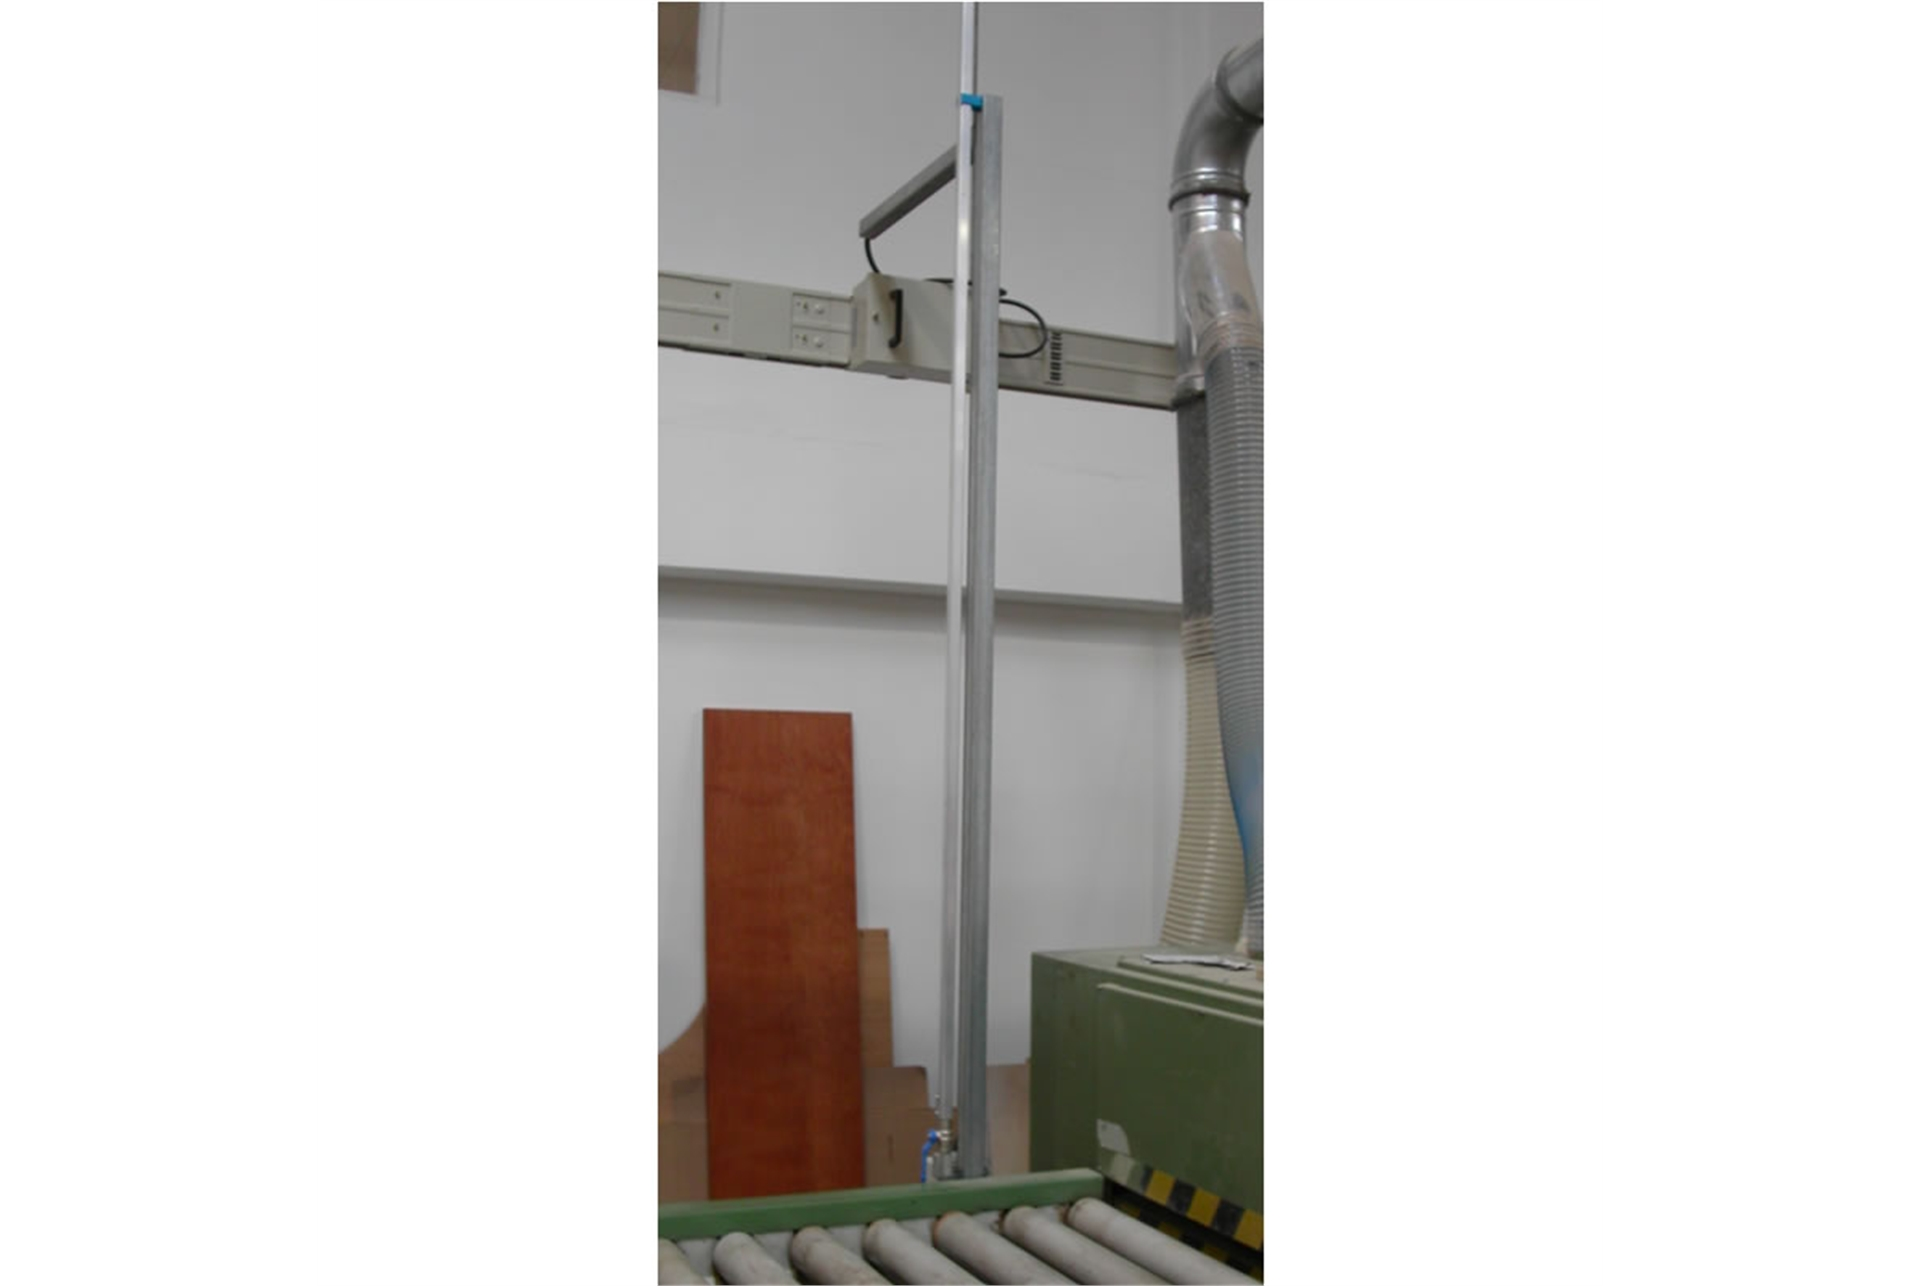 Piping Systems For Compressed Air Farrell Teseo